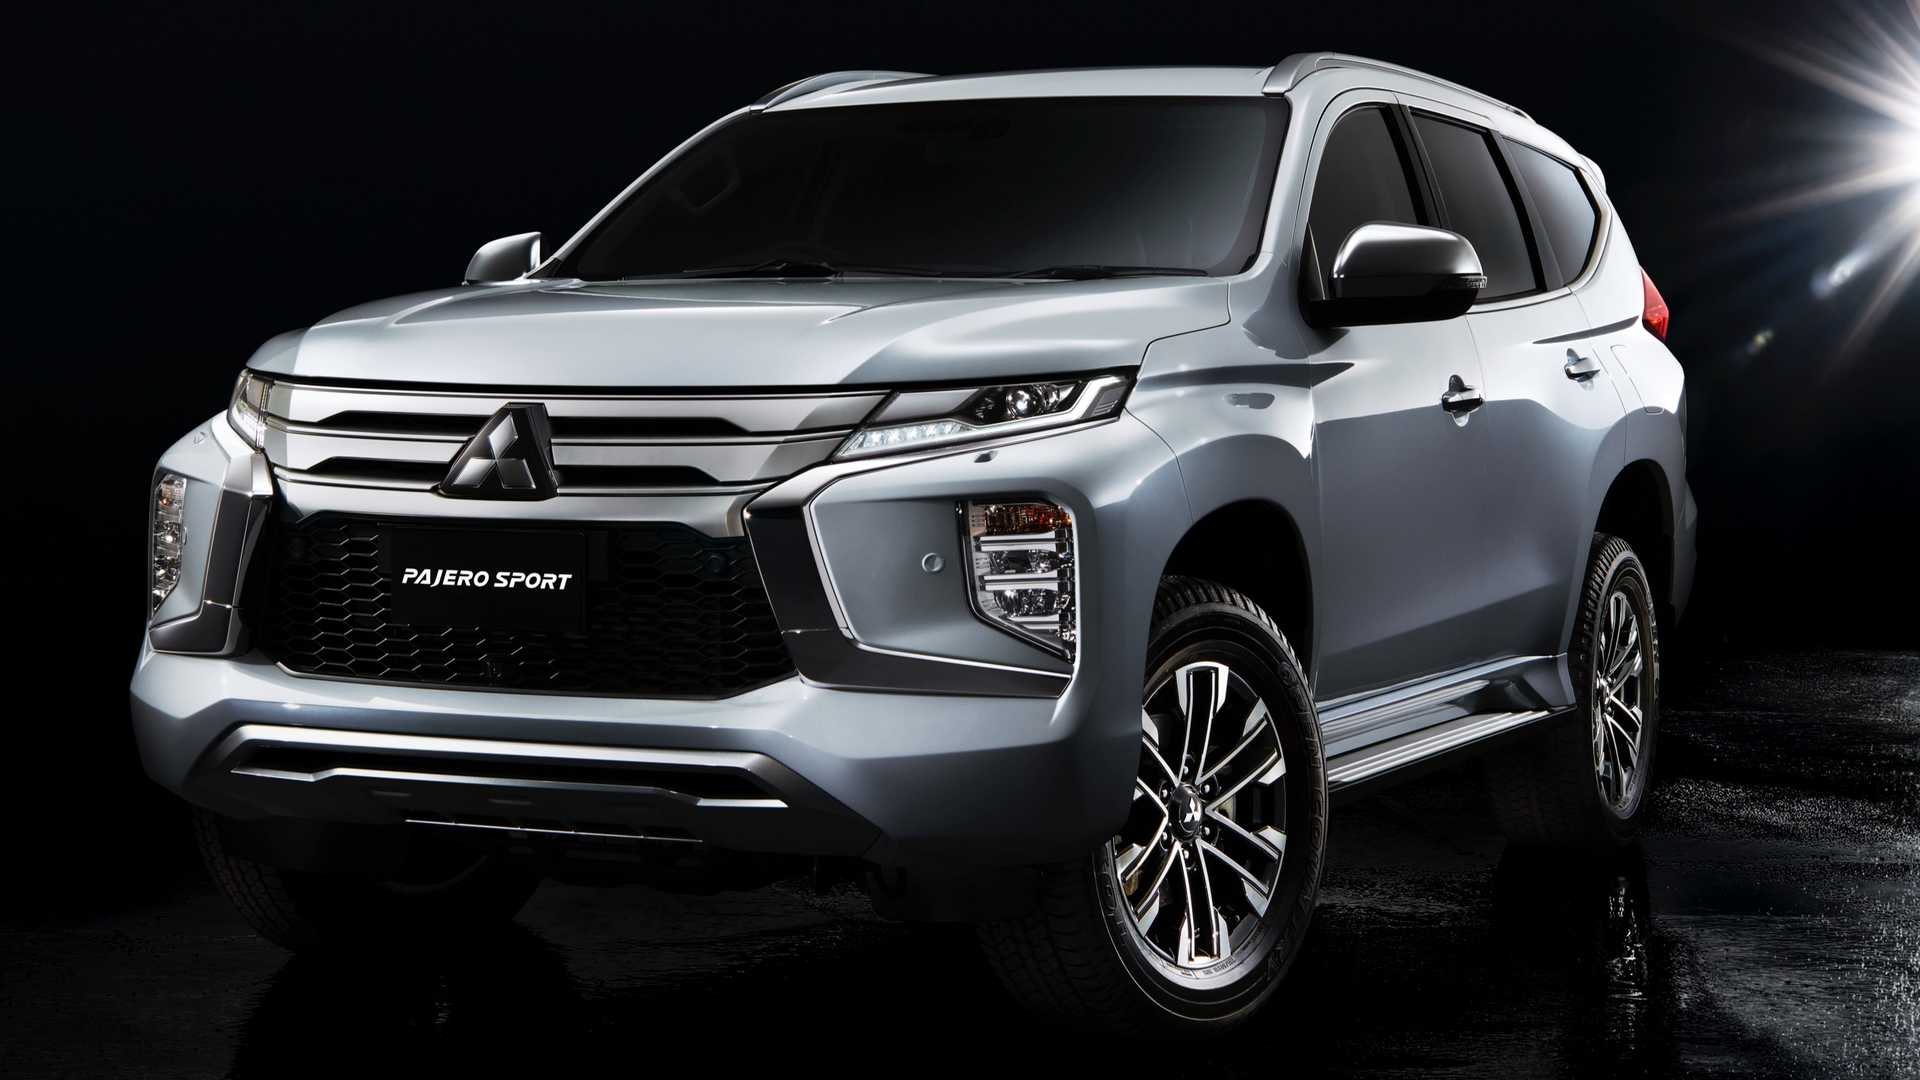 74 New Mitsubishi Montero Limited 2020 Interior